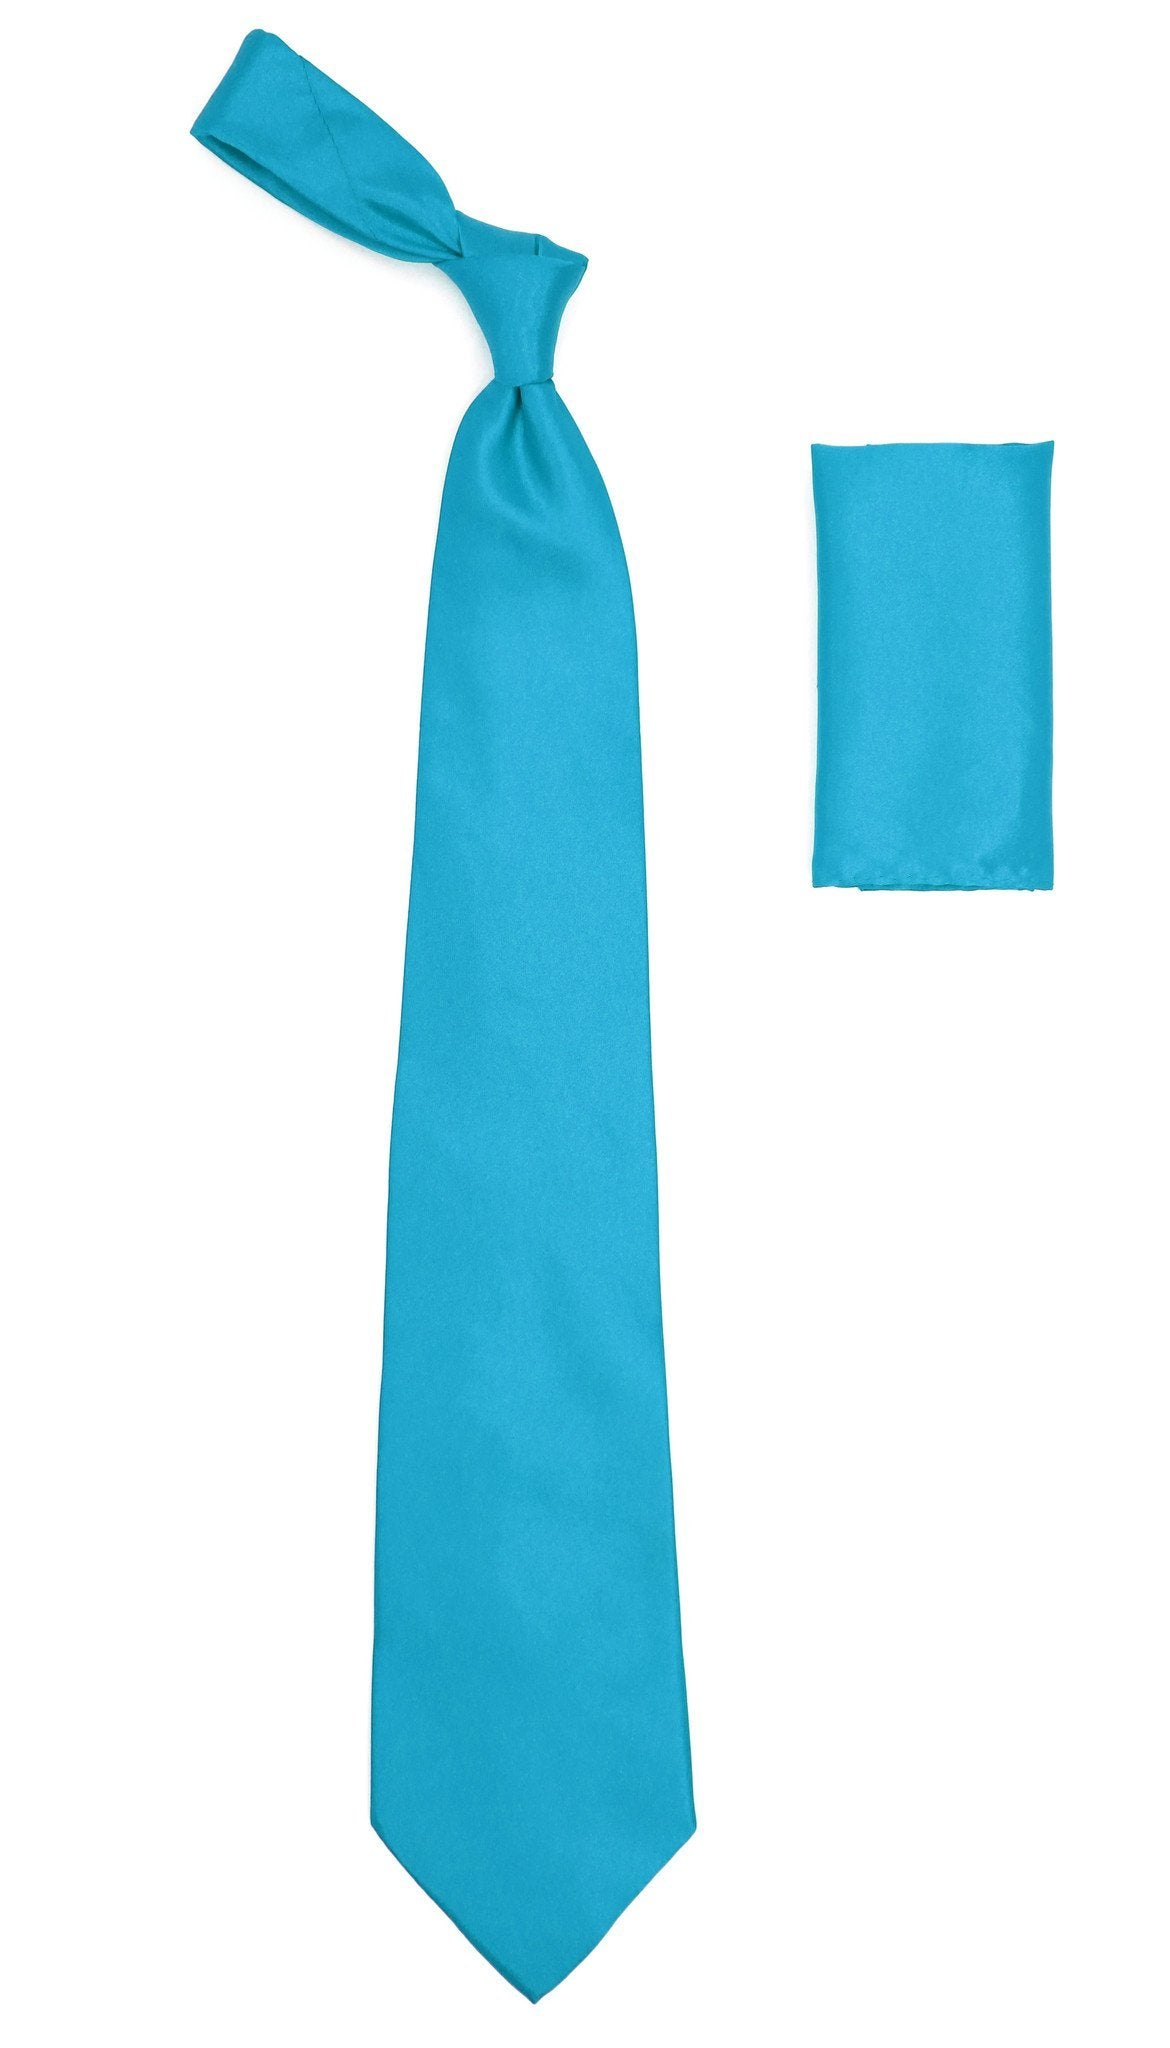 Turquoise Satin Regular Fit French Cuff Dress Shirt, Tie & Hanky Set - Ferrecci USA